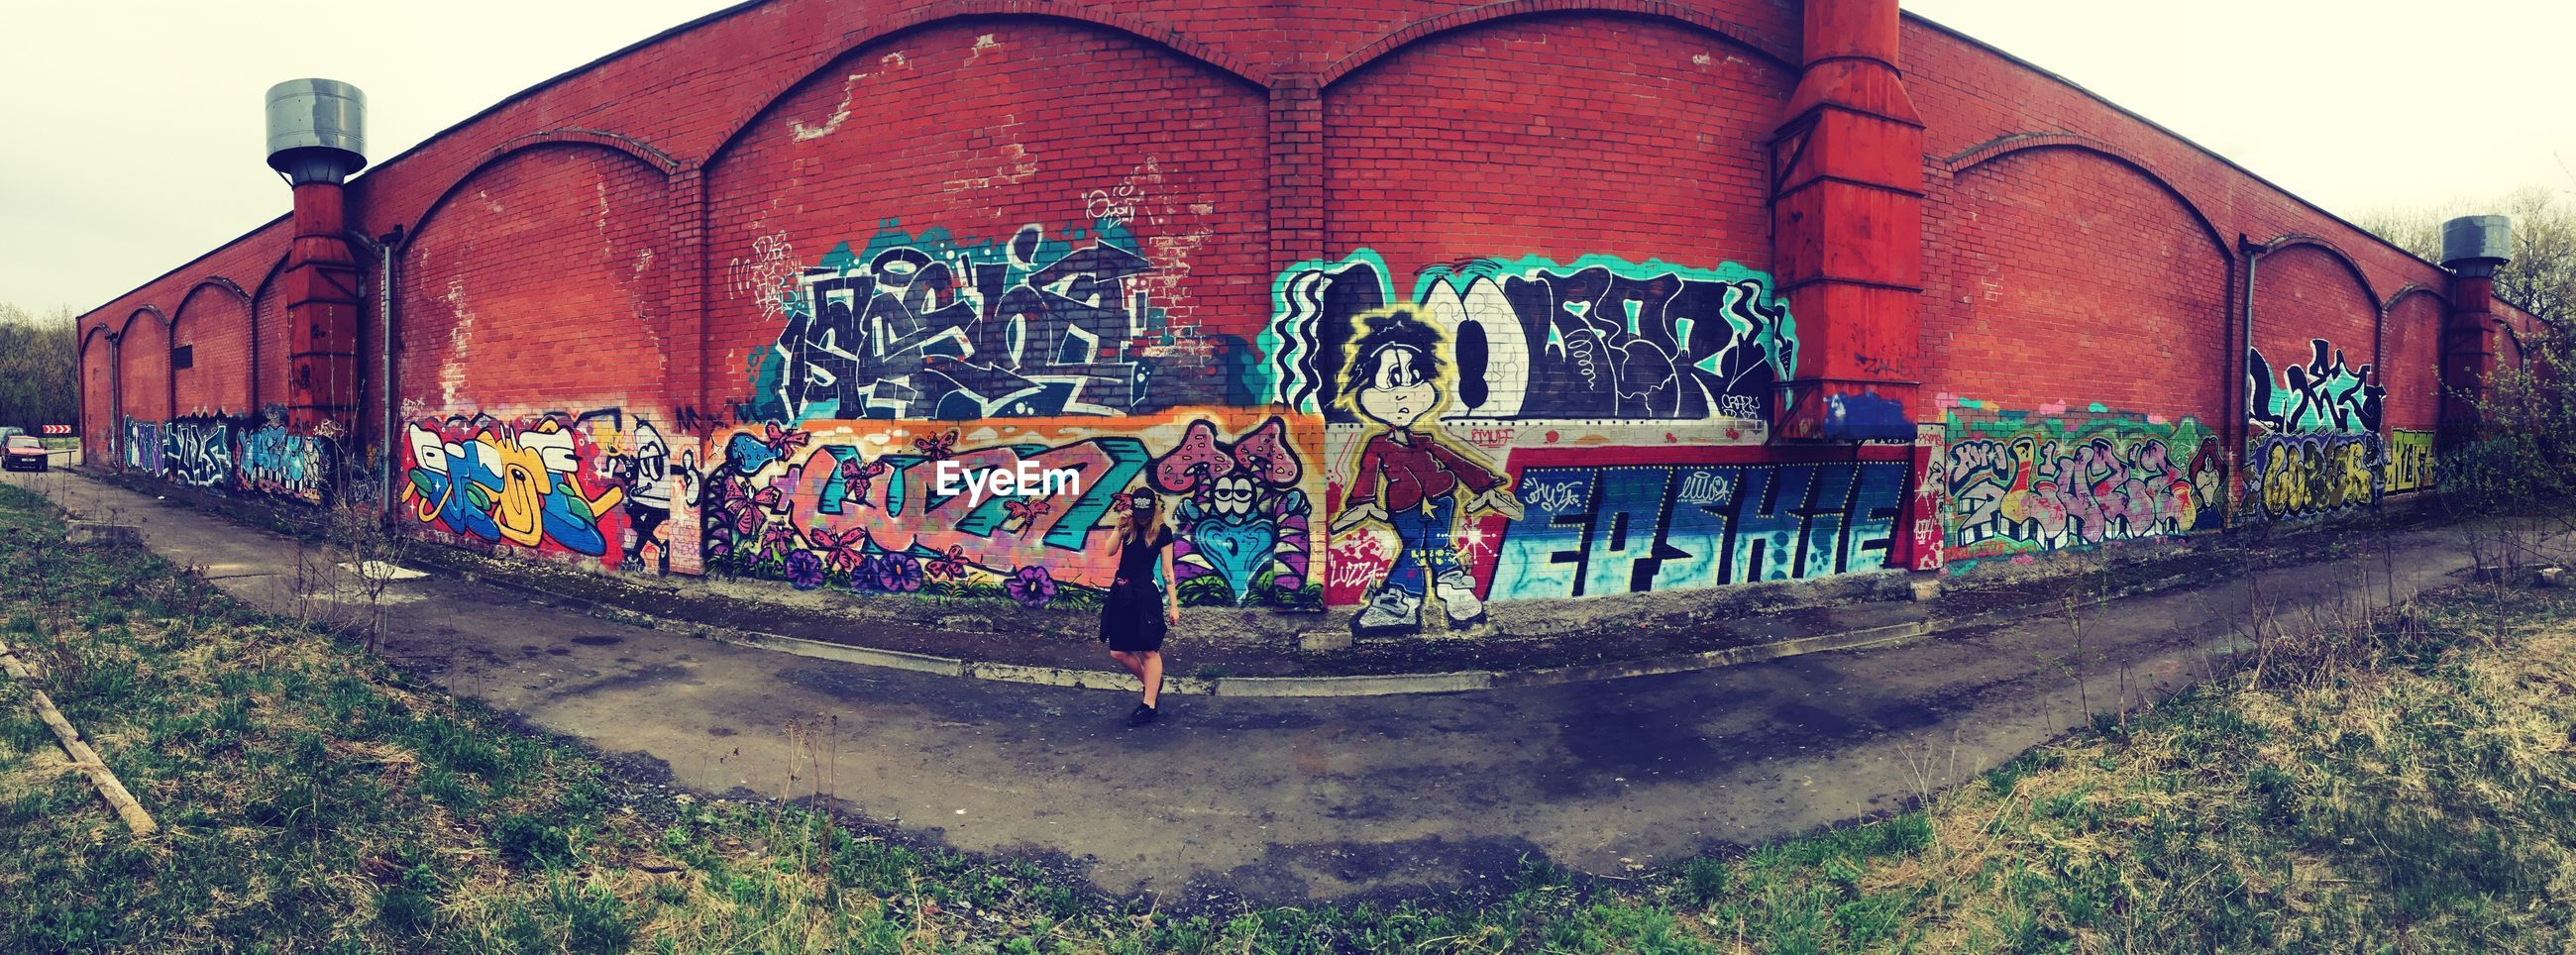 graffiti, text, built structure, architecture, day, outdoors, building exterior, street art, communication, no people, sky